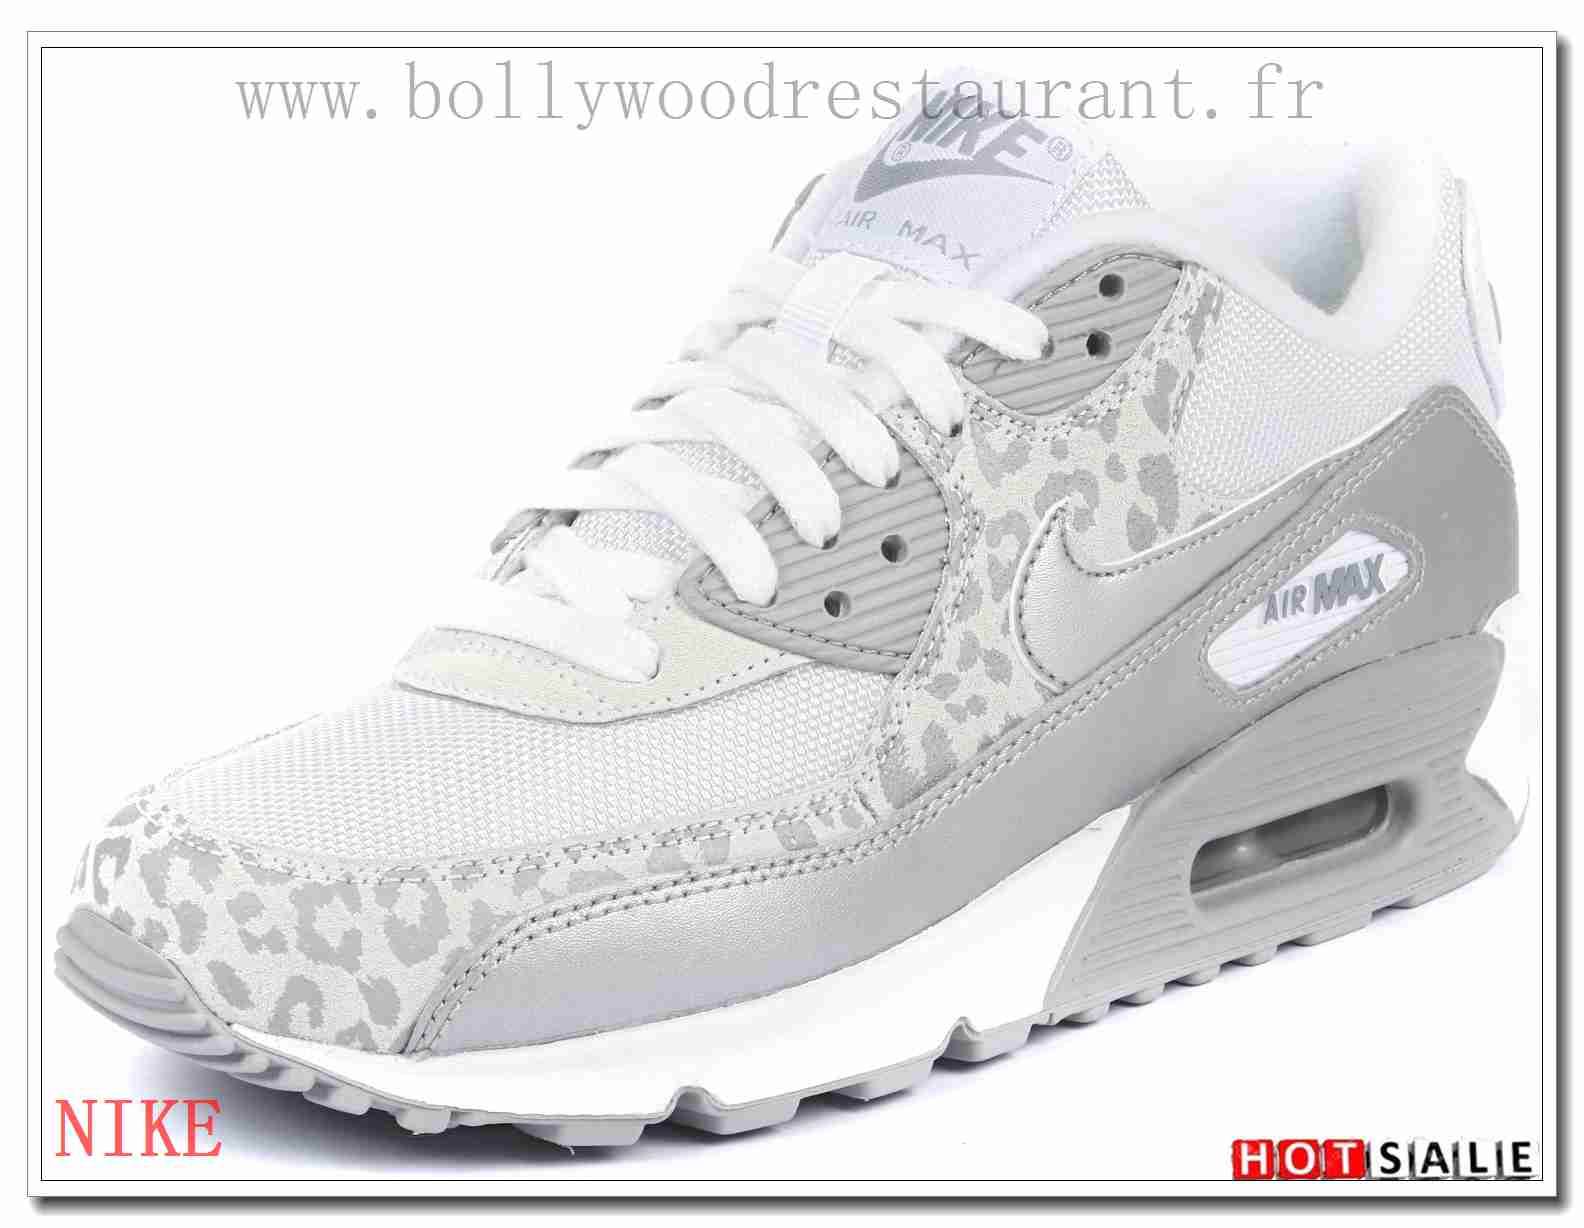 YI8969 Loisirs 2018 Nouveau style Nike Air Max 90 - Femme Chaussures - Blanche Promotions Vente - H.K.Y.&621 - Taille : 36~39